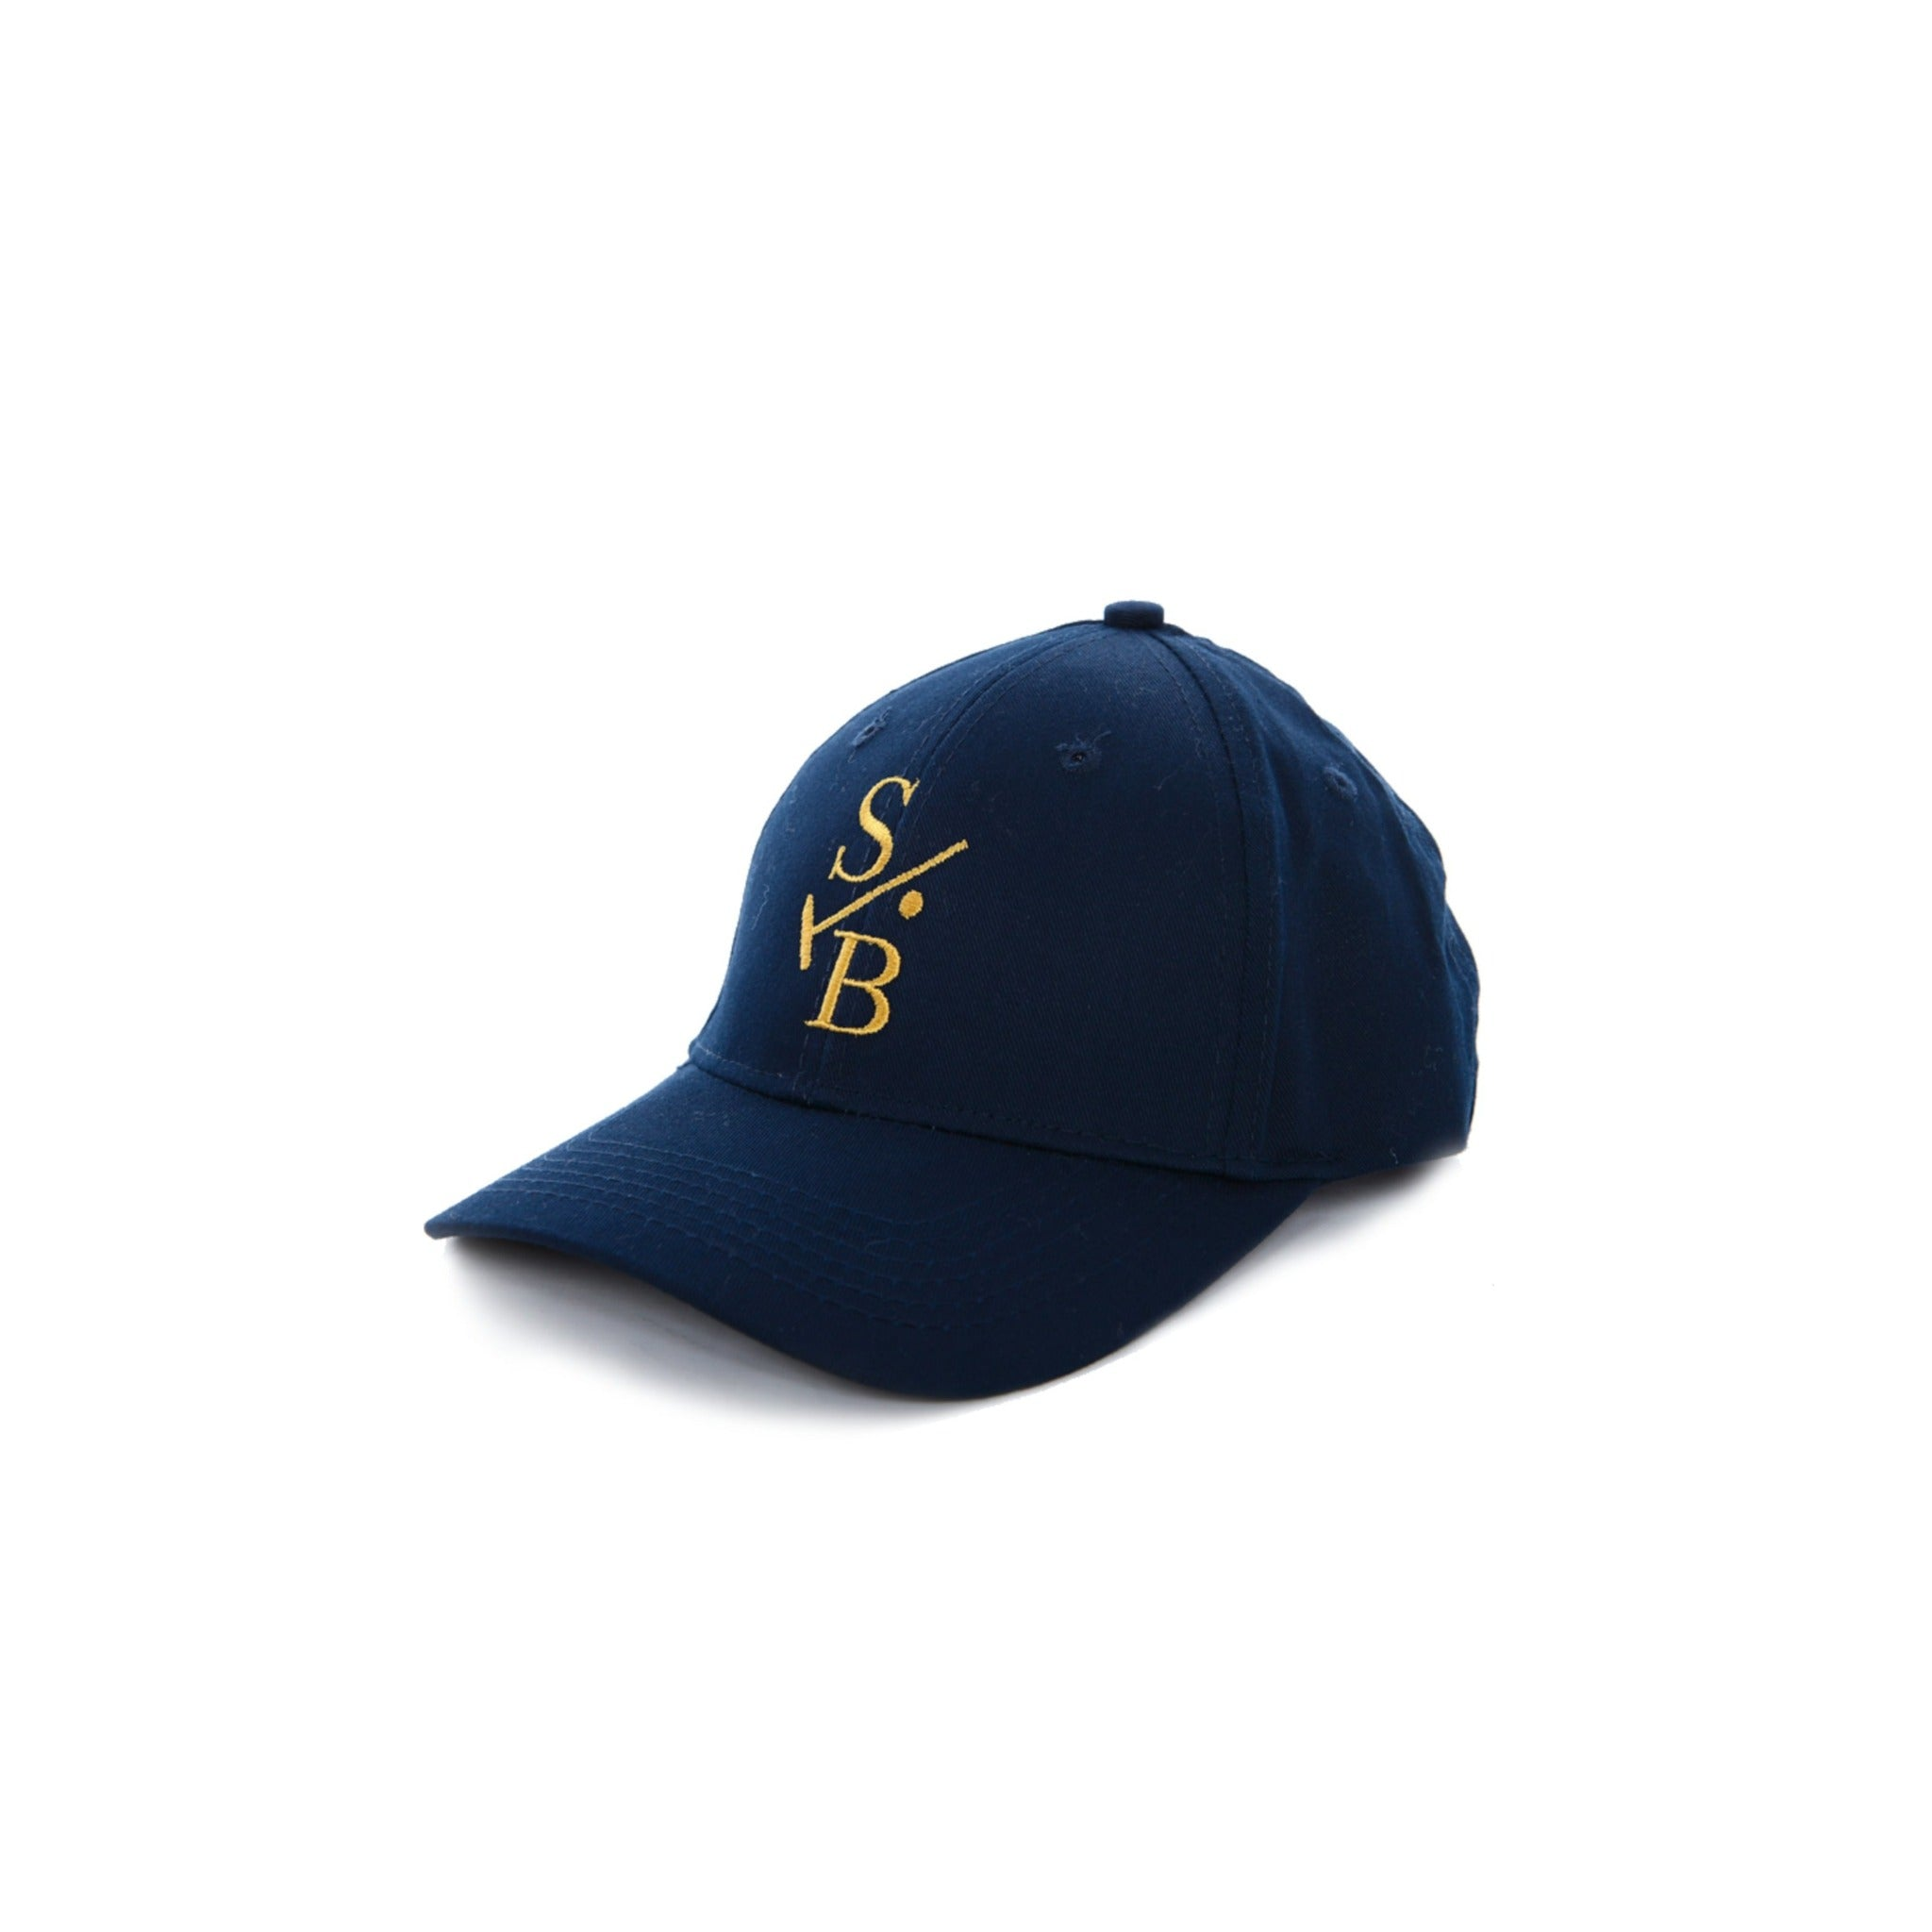 Embroidered Baseball Cap - Navy